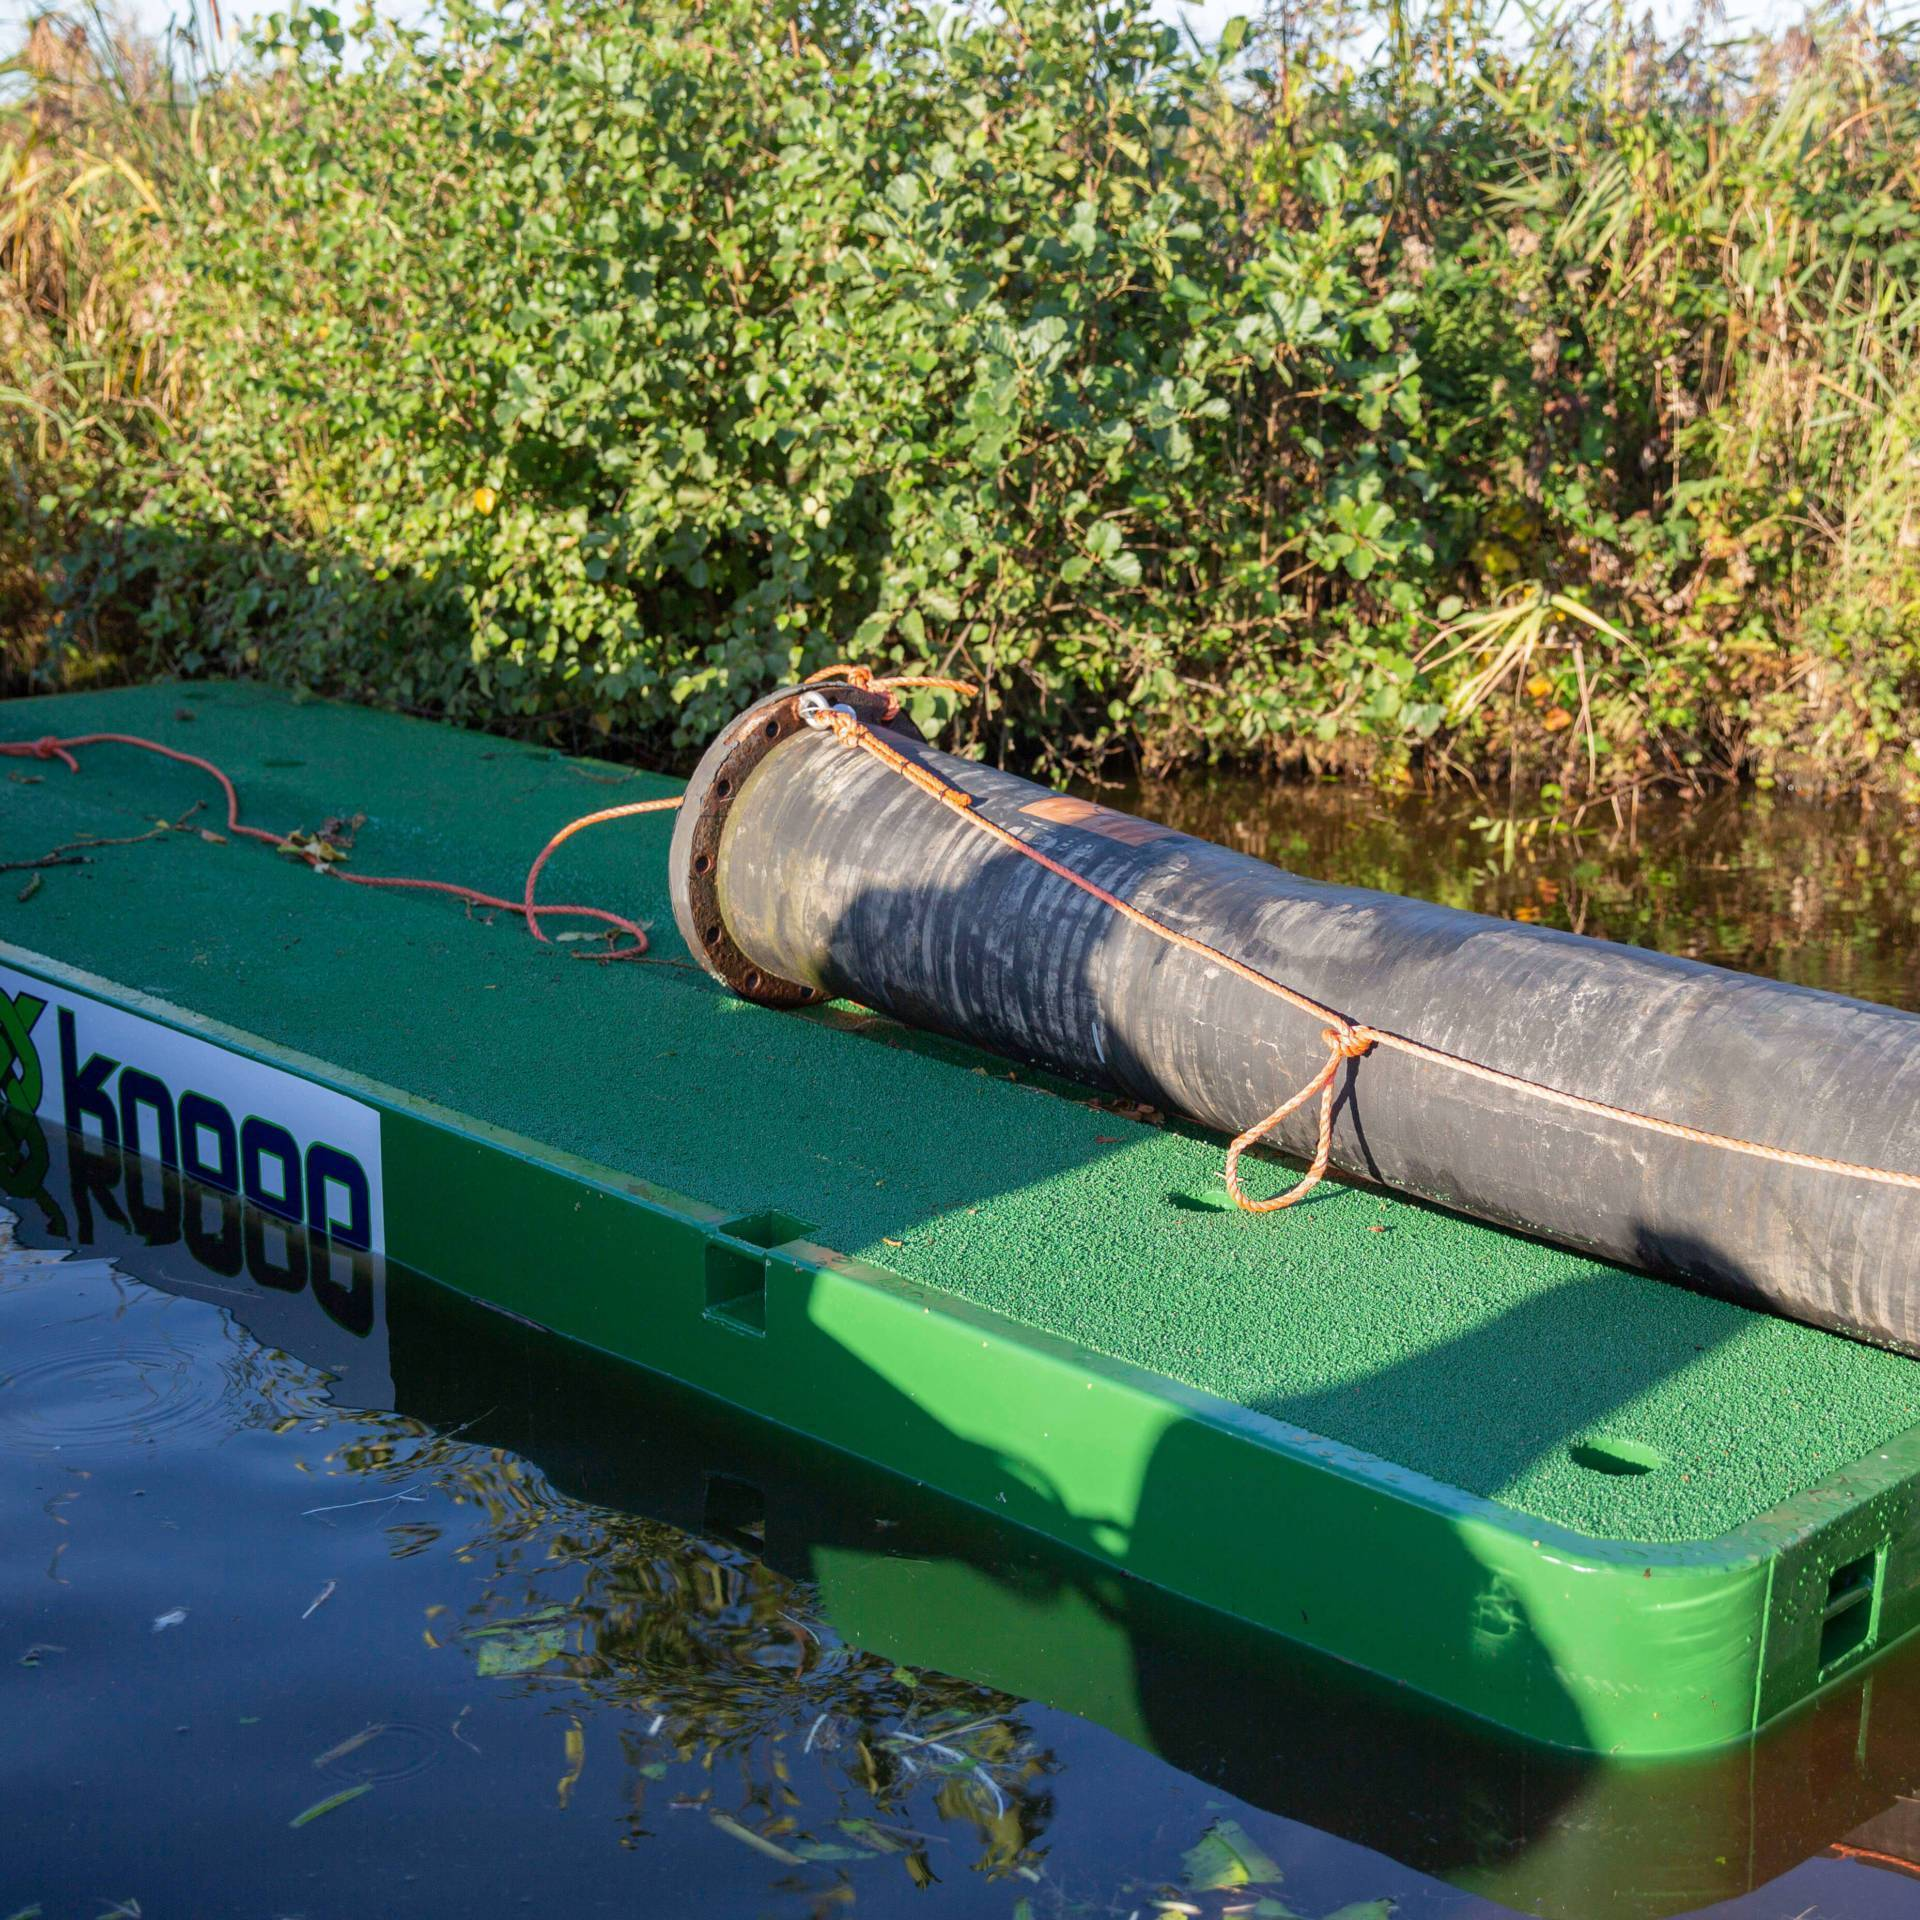 connection pipeline or dredging hoses